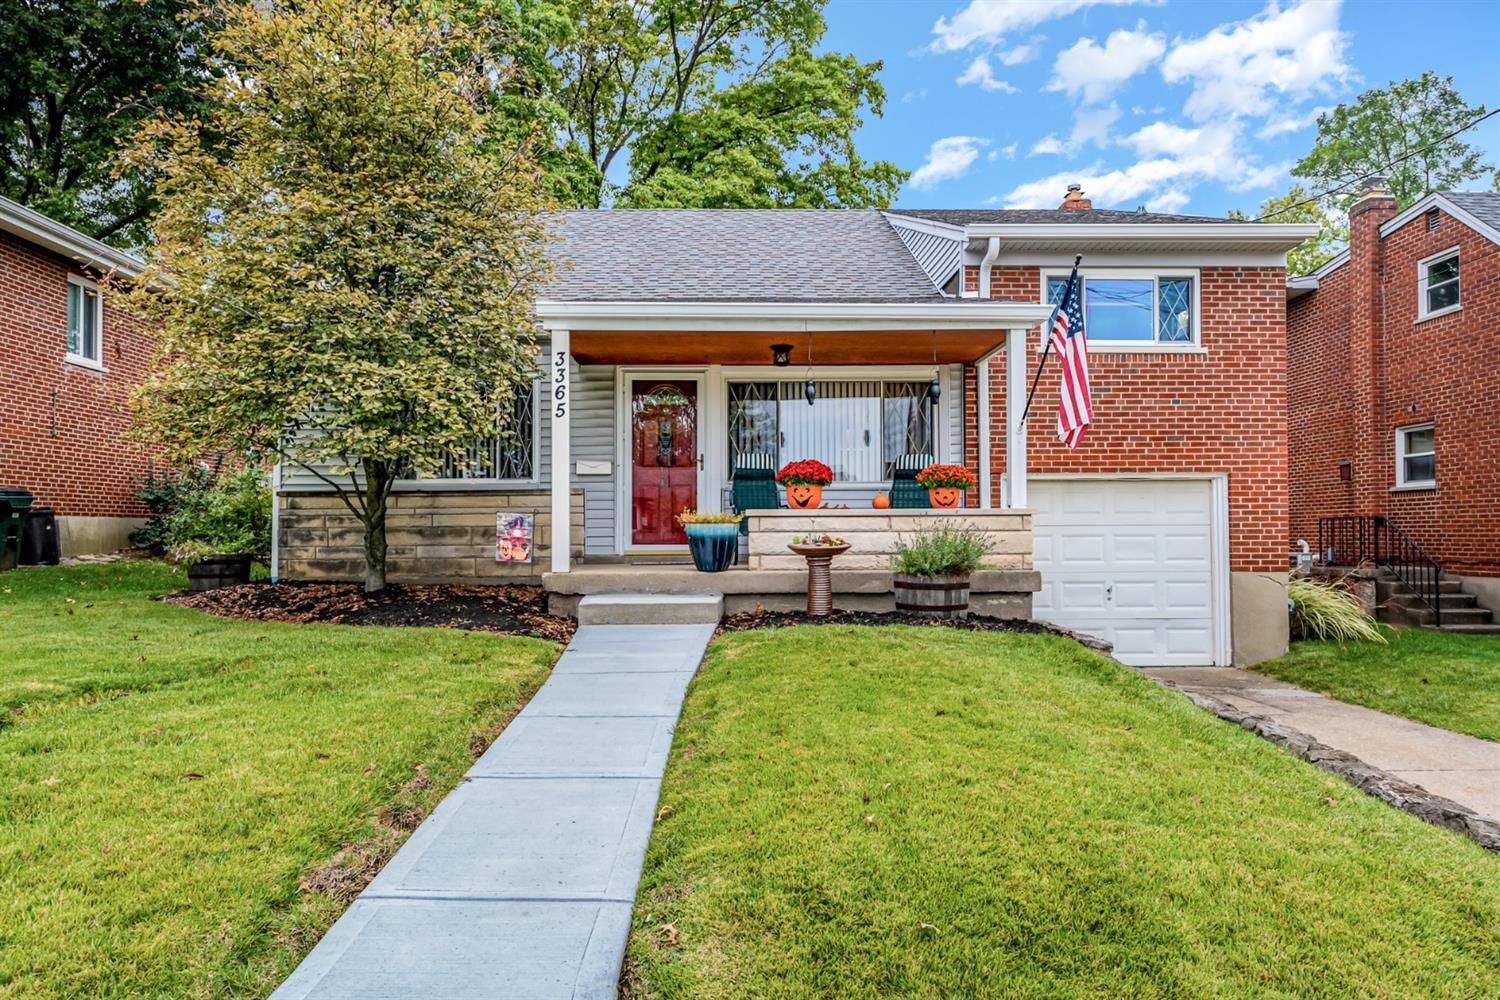 cute brick and vinyl QUAD, 4 bedrooms, main living room is open to dining & then a lower level family room! longtime owner has all the longterm updates ready for you